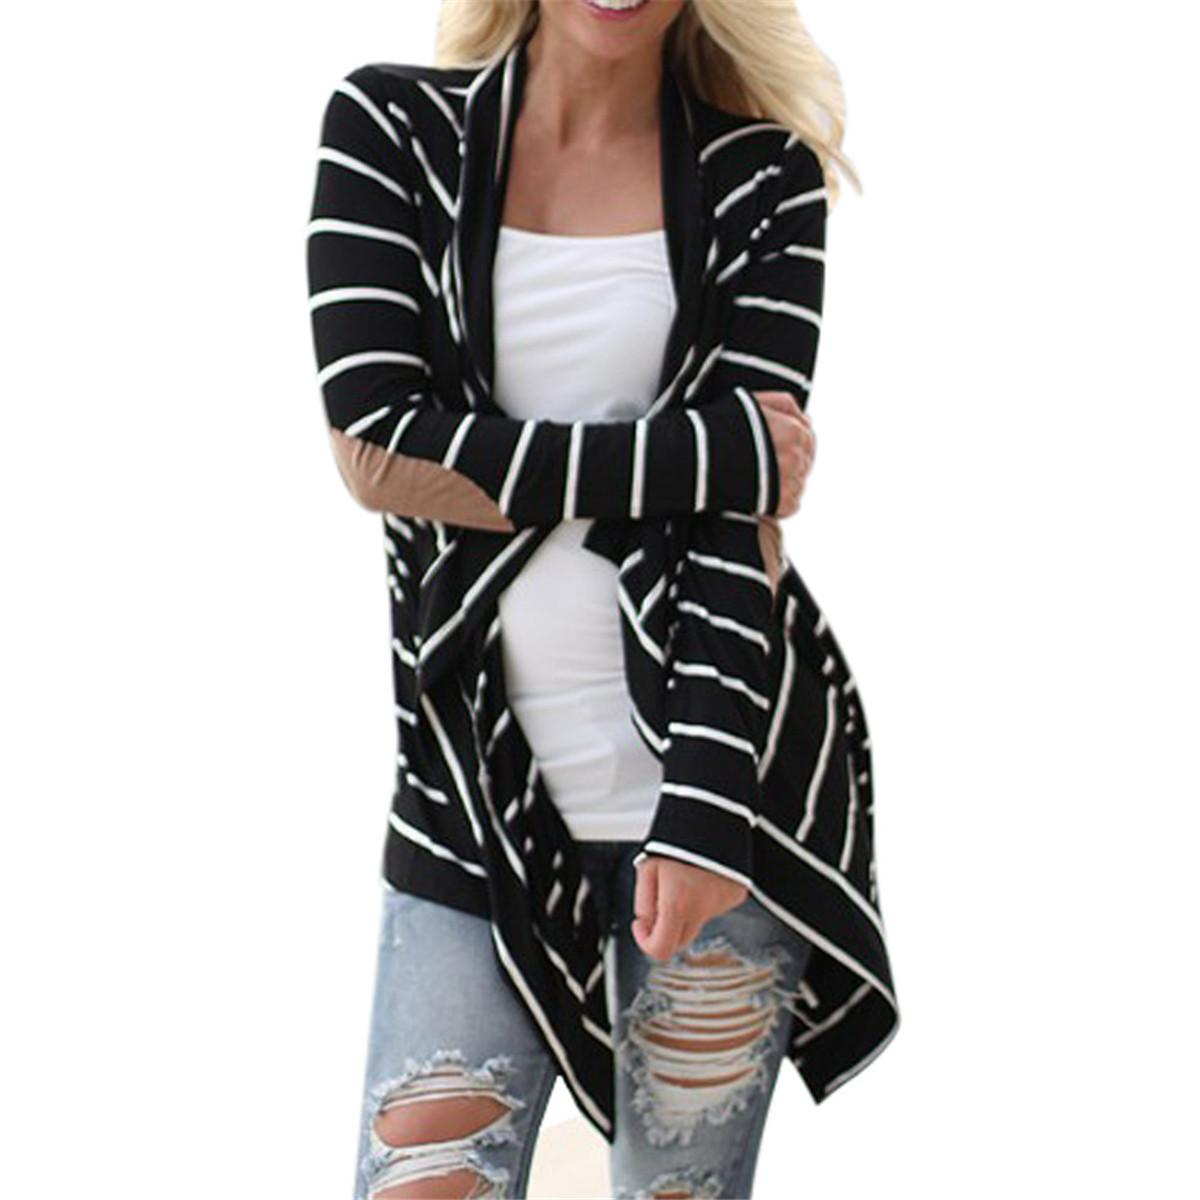 2018 Wholesale Casual Loose Striped Women Cardigan Coat 2016 New Plus Size  Elbow Patchwork Knitted Tops Sweater Thin Outwear Knitwear From Avive 587097f9e